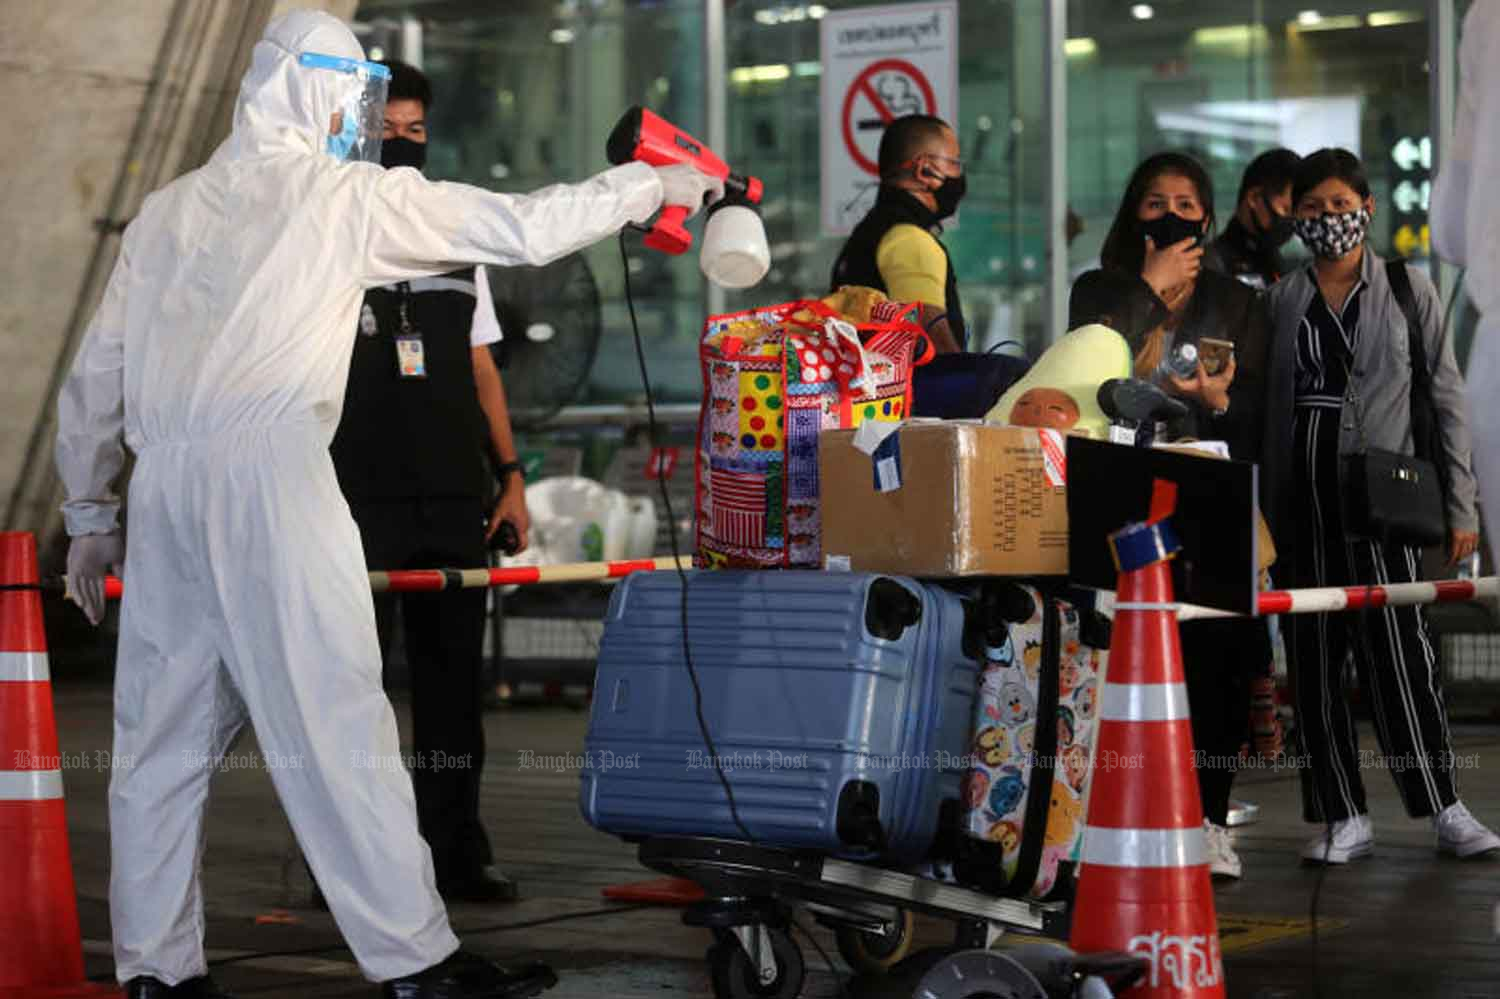 An airport official in protective gear sprays disinfectant on passengers' luggage at Suvarnabhumi airport as more Thais who had been stranded overseas and selected groups of foreigners continued to arrive in Thailand on Monday. (Photo: Wichan Charoenkiatpakul)